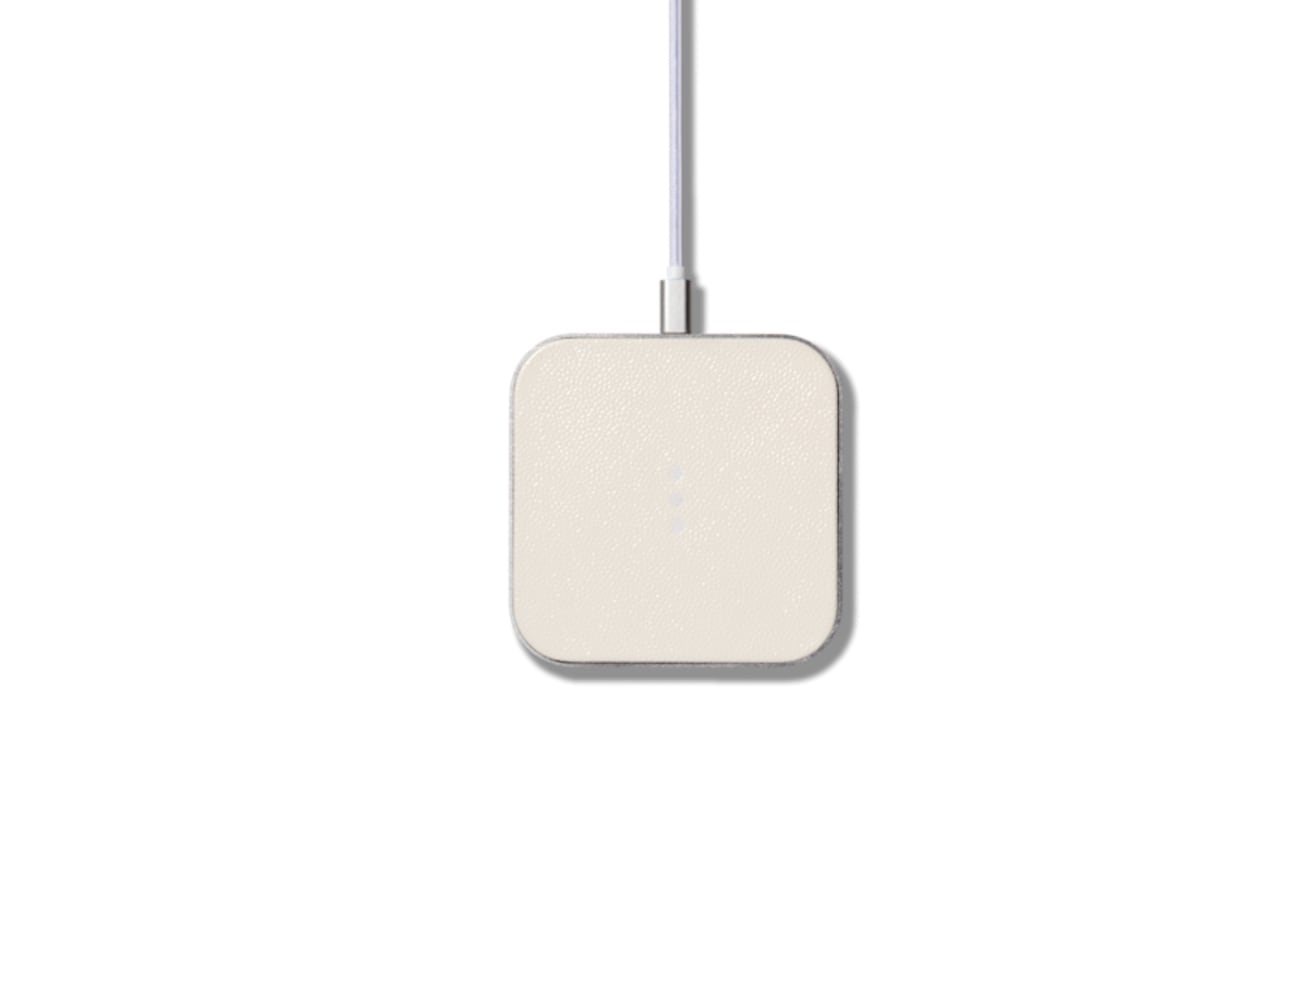 Courant Catch 1 Aluminum Fast Wireless Charger